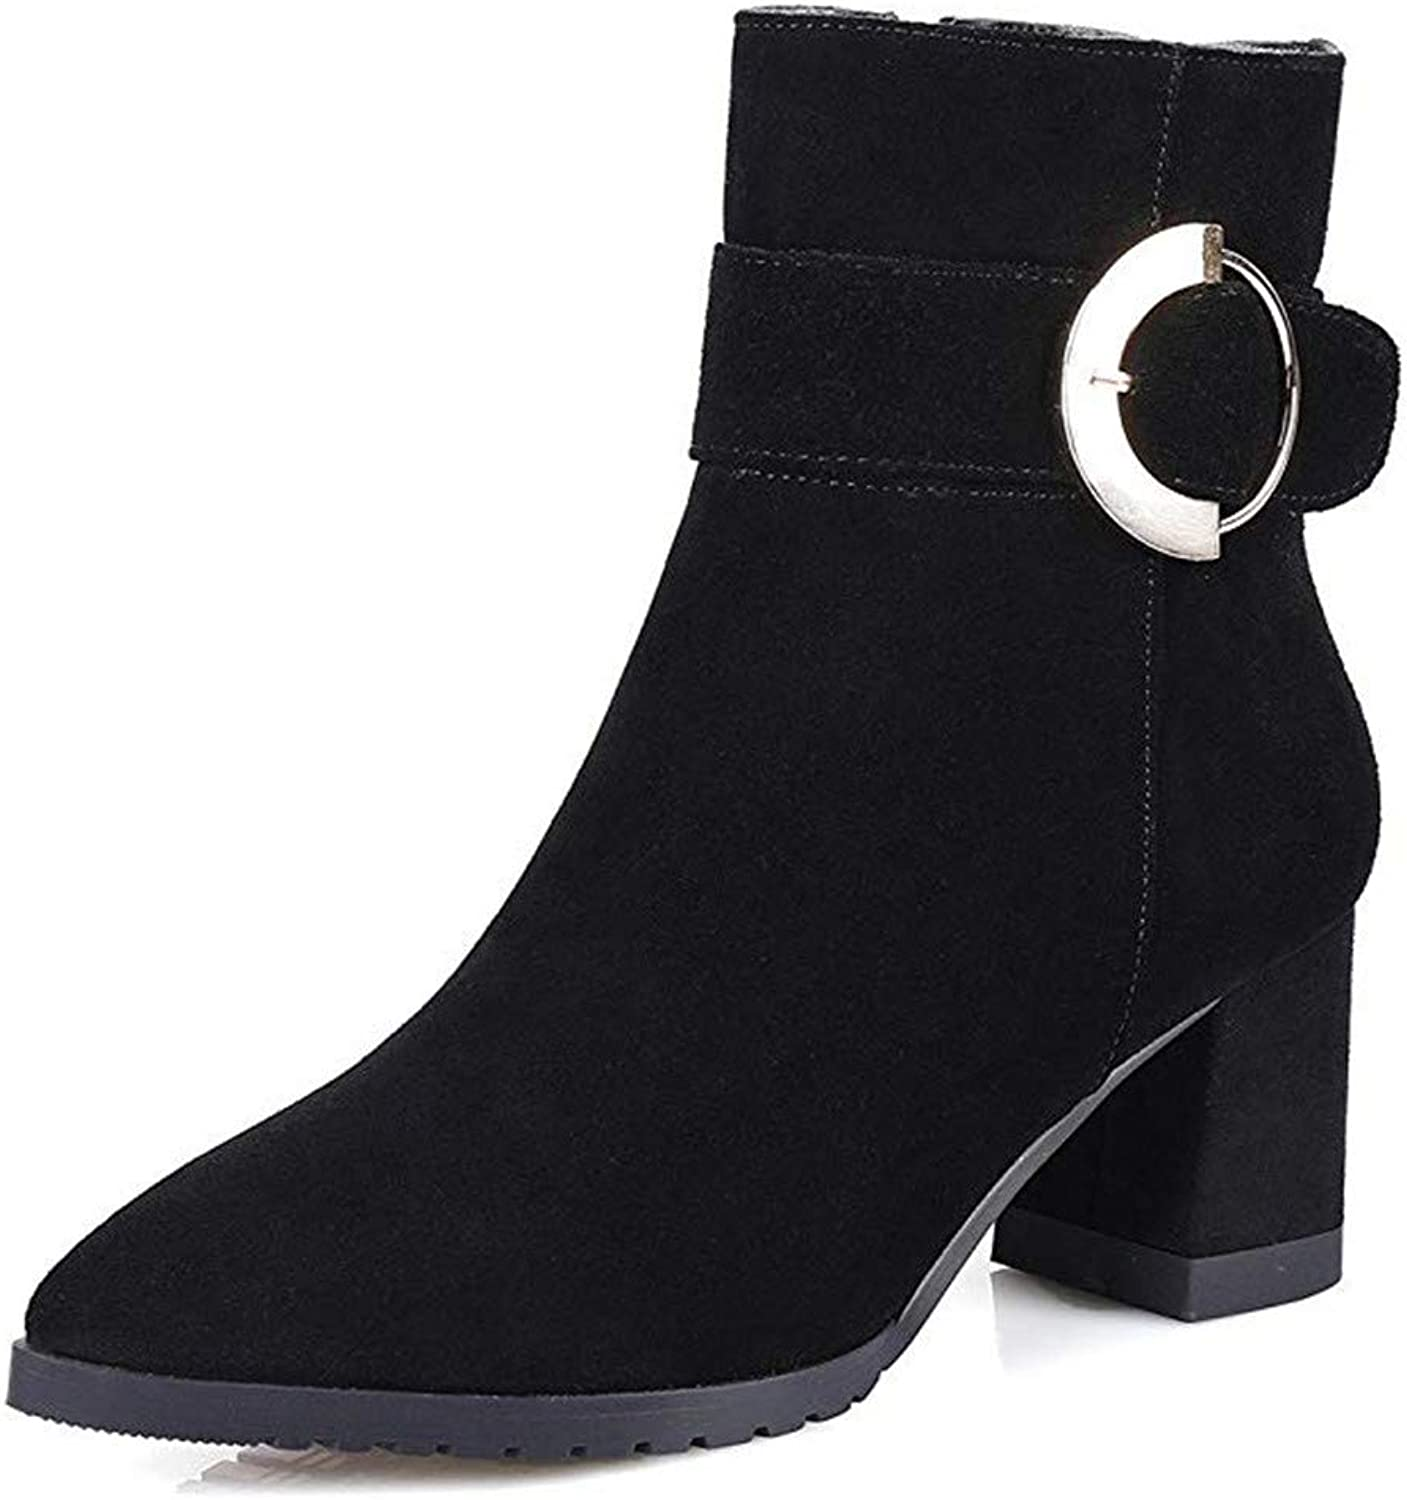 Nine Seven Suede Leather Women's Pointed Toe Chunky Heel Buckle Classic Handmade Black Ankle Boots (4, Black)